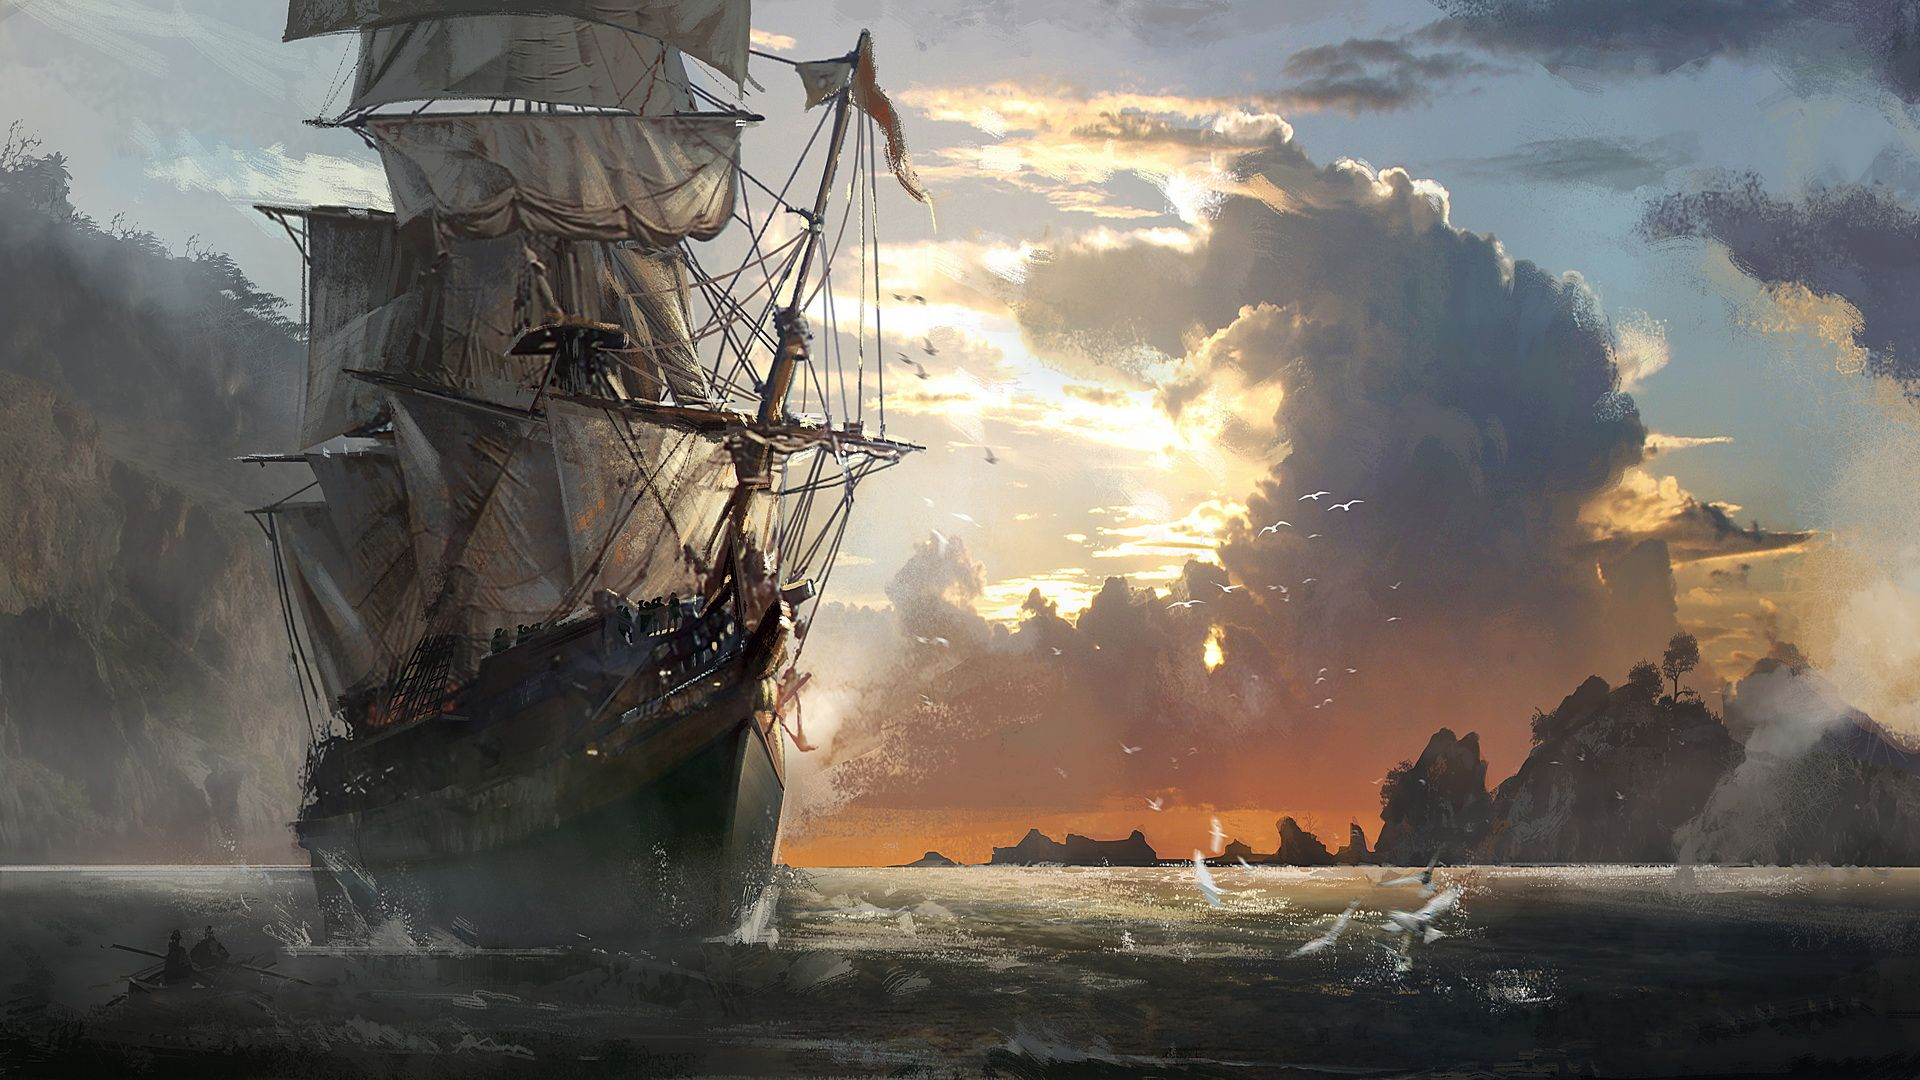 pirate ship wallpaper mobile is cool wallpapers | fantasy